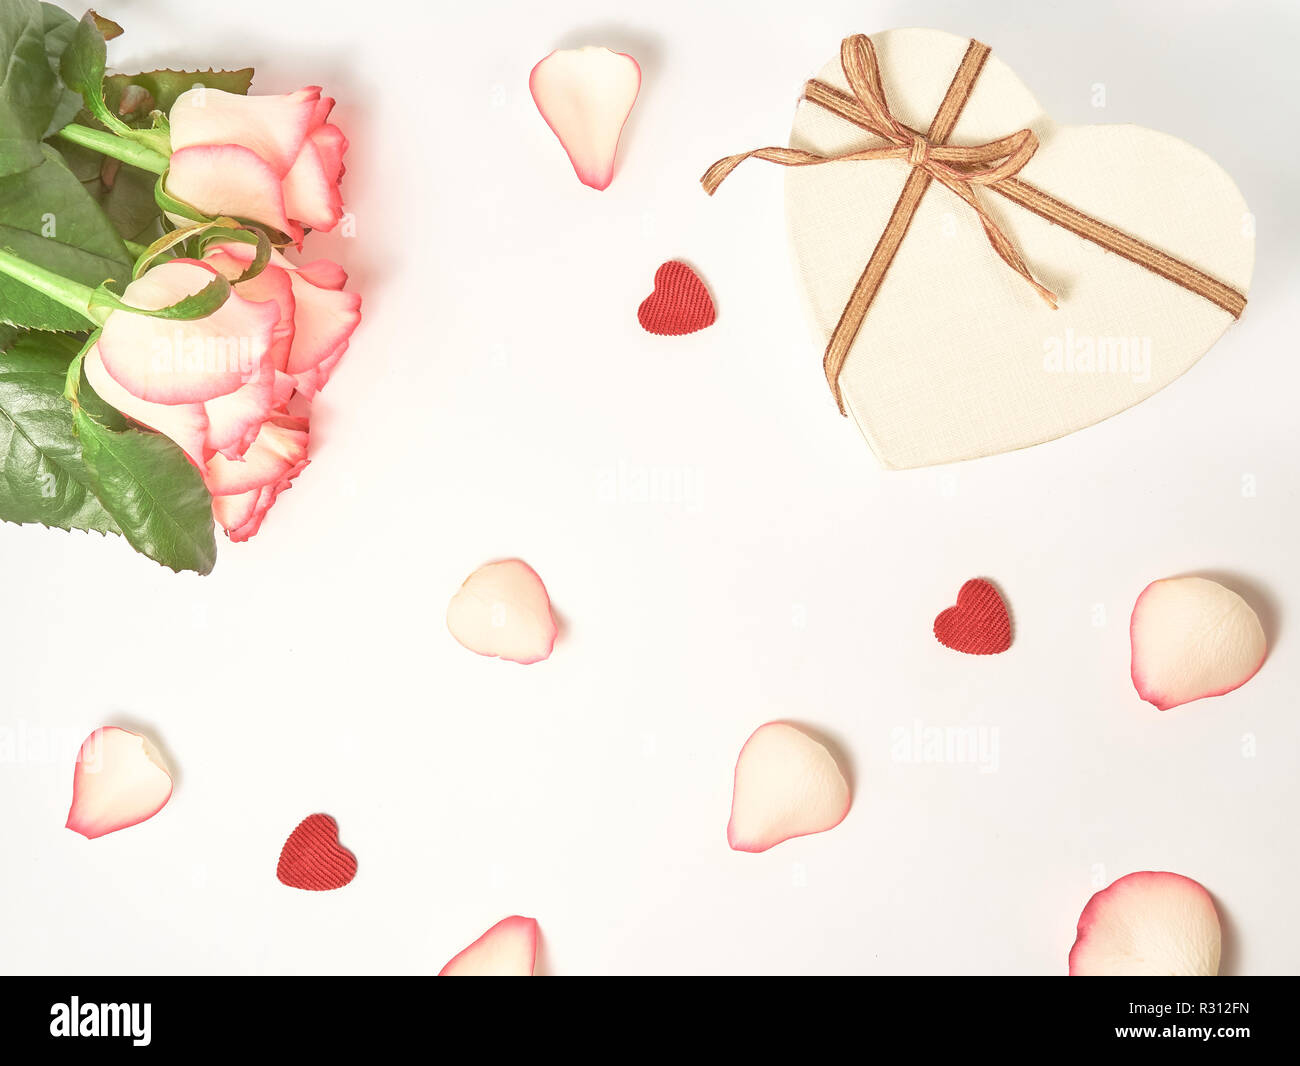 Gift and roses composition on the white background. Top view, flat lay. Birthday, Mother's, Valentines, Women's, Wedding Day concept. Stock Photo